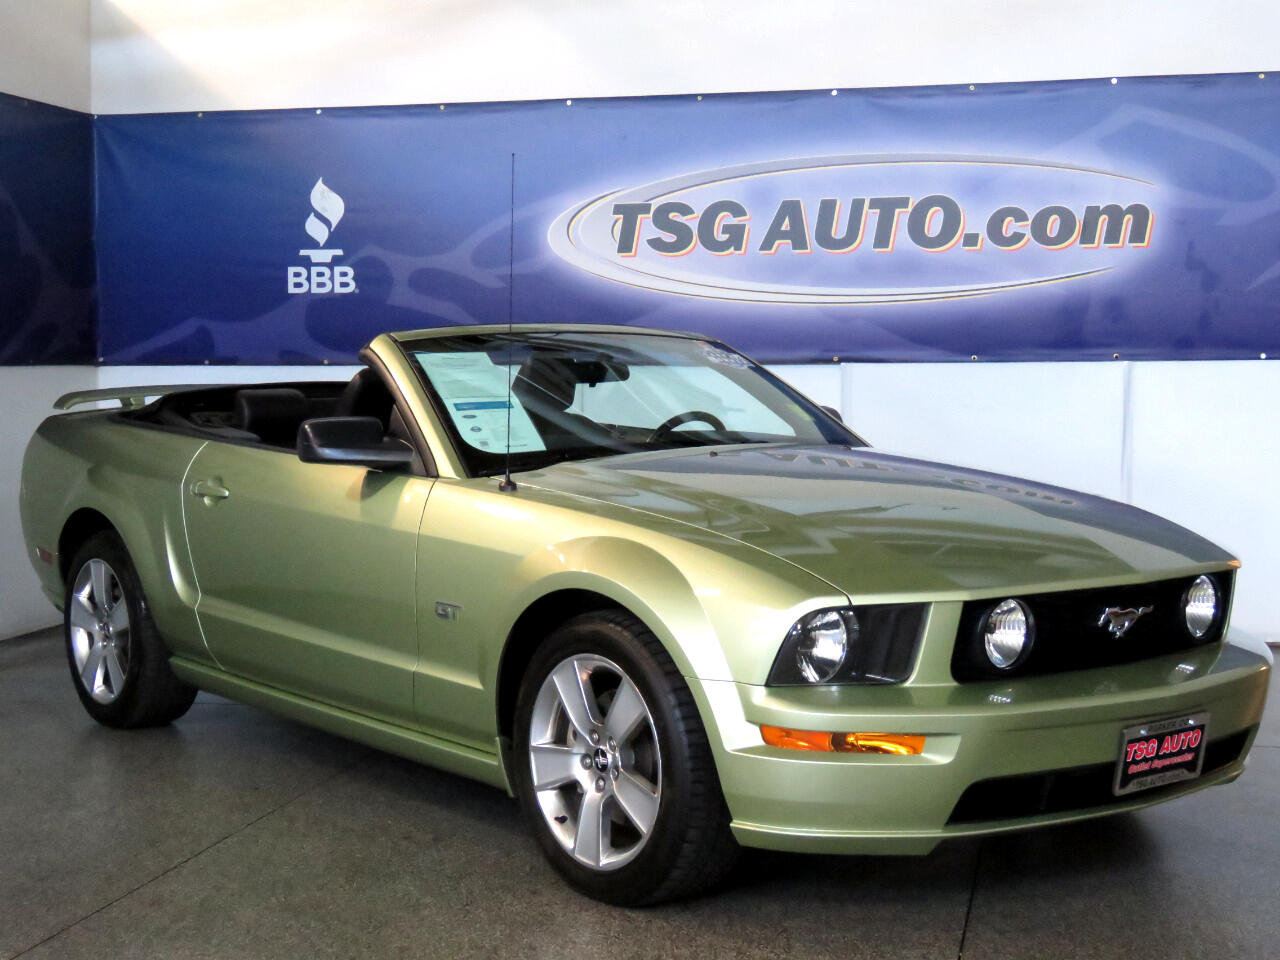 2006 Ford Mustang Ford Mustang 2dr Conv GT Premium